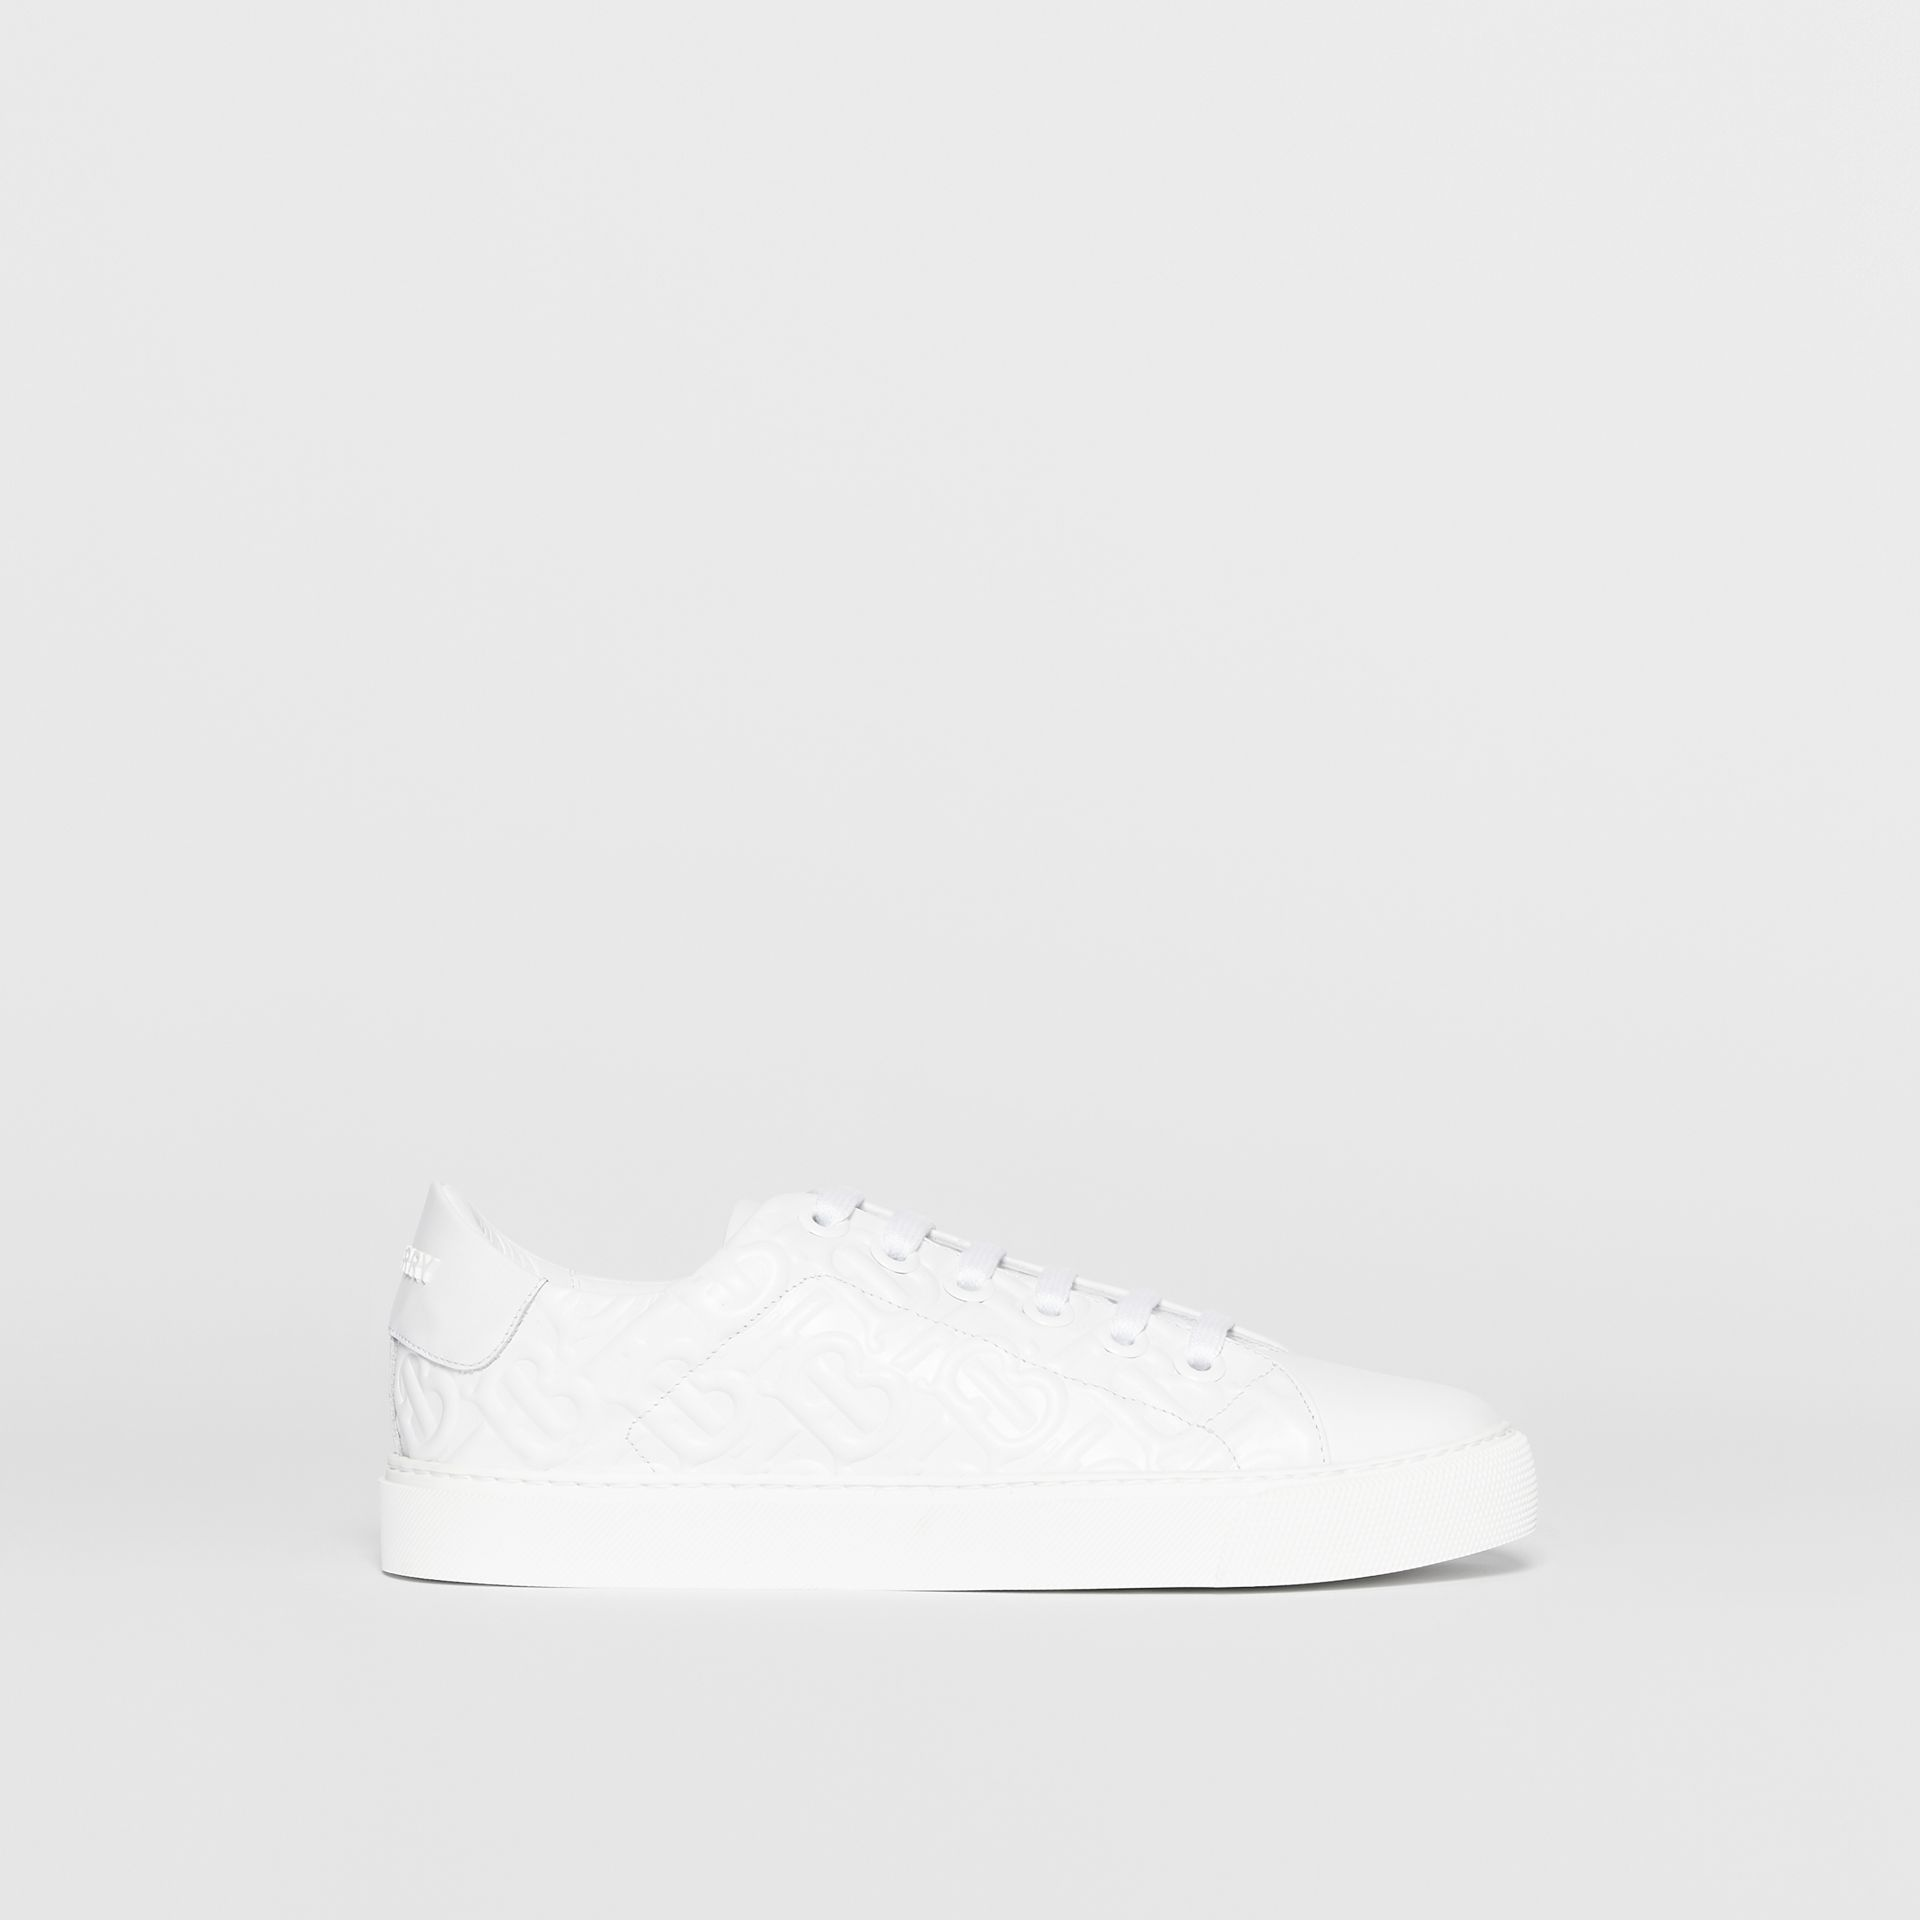 Sneakers en cuir Monogram (Blanc) - Femme | Burberry - photo de la galerie 5